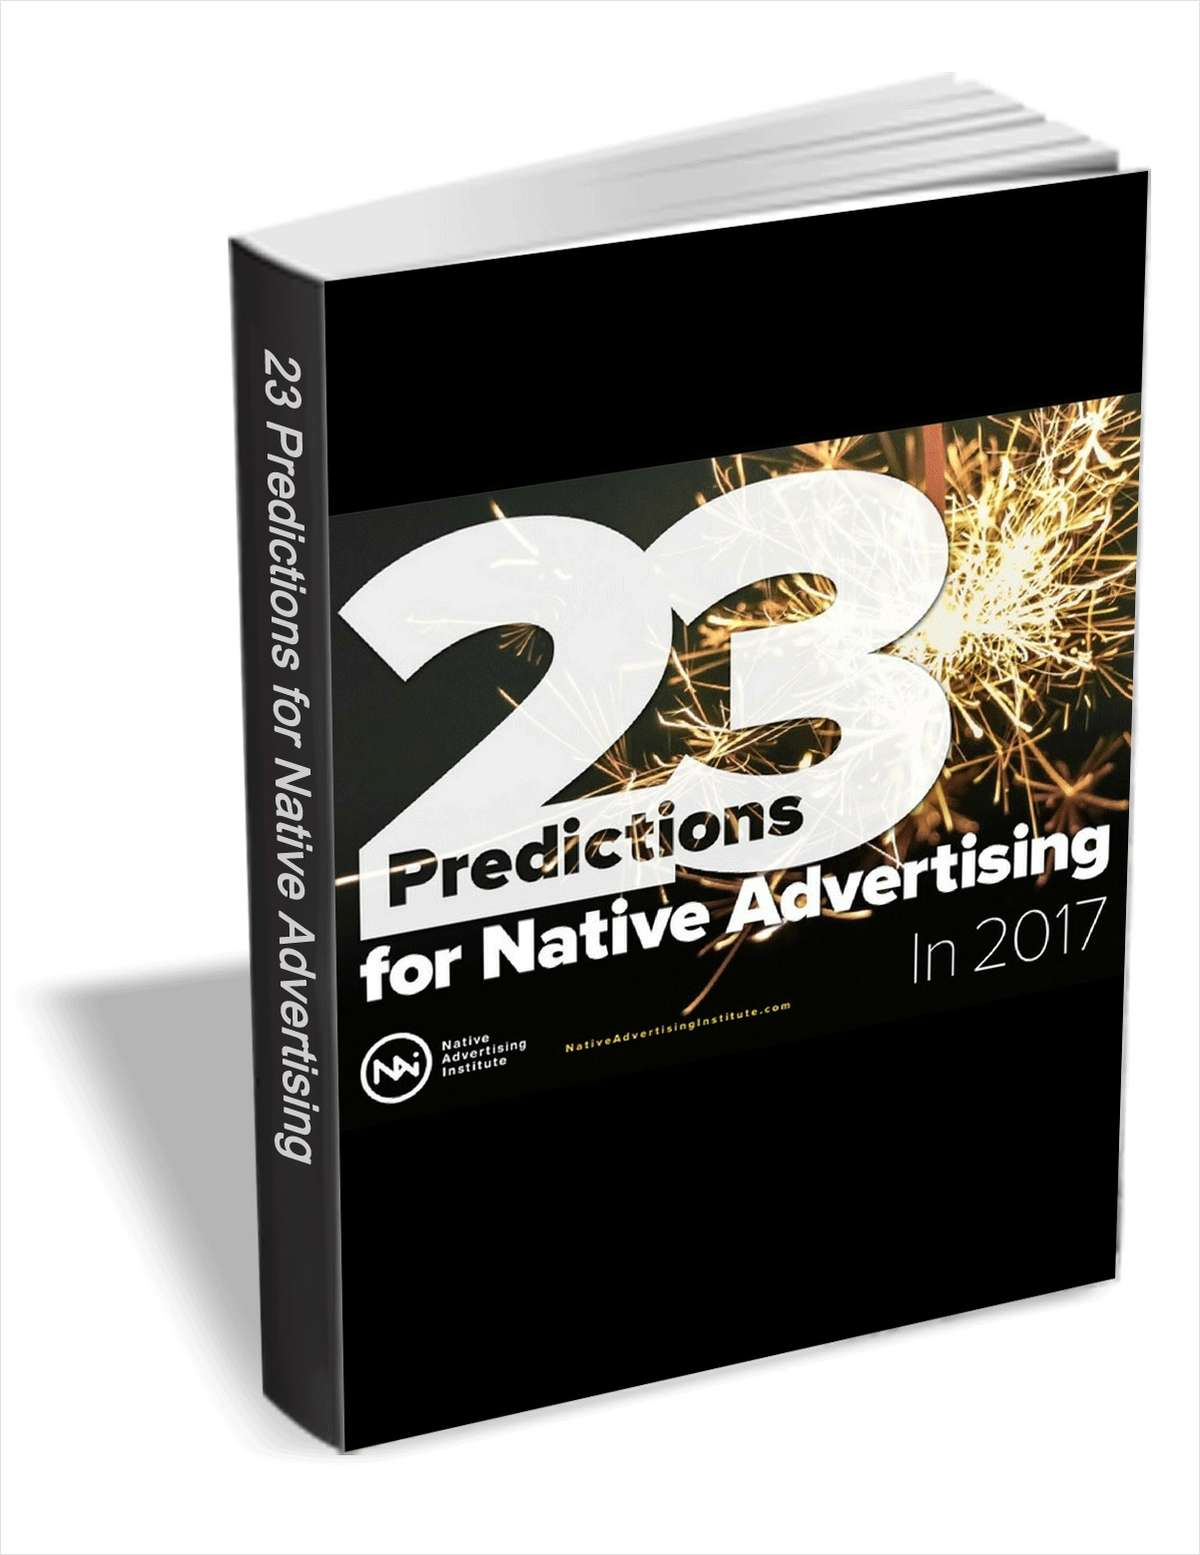 23 Predictions for Native Advertising in 2017